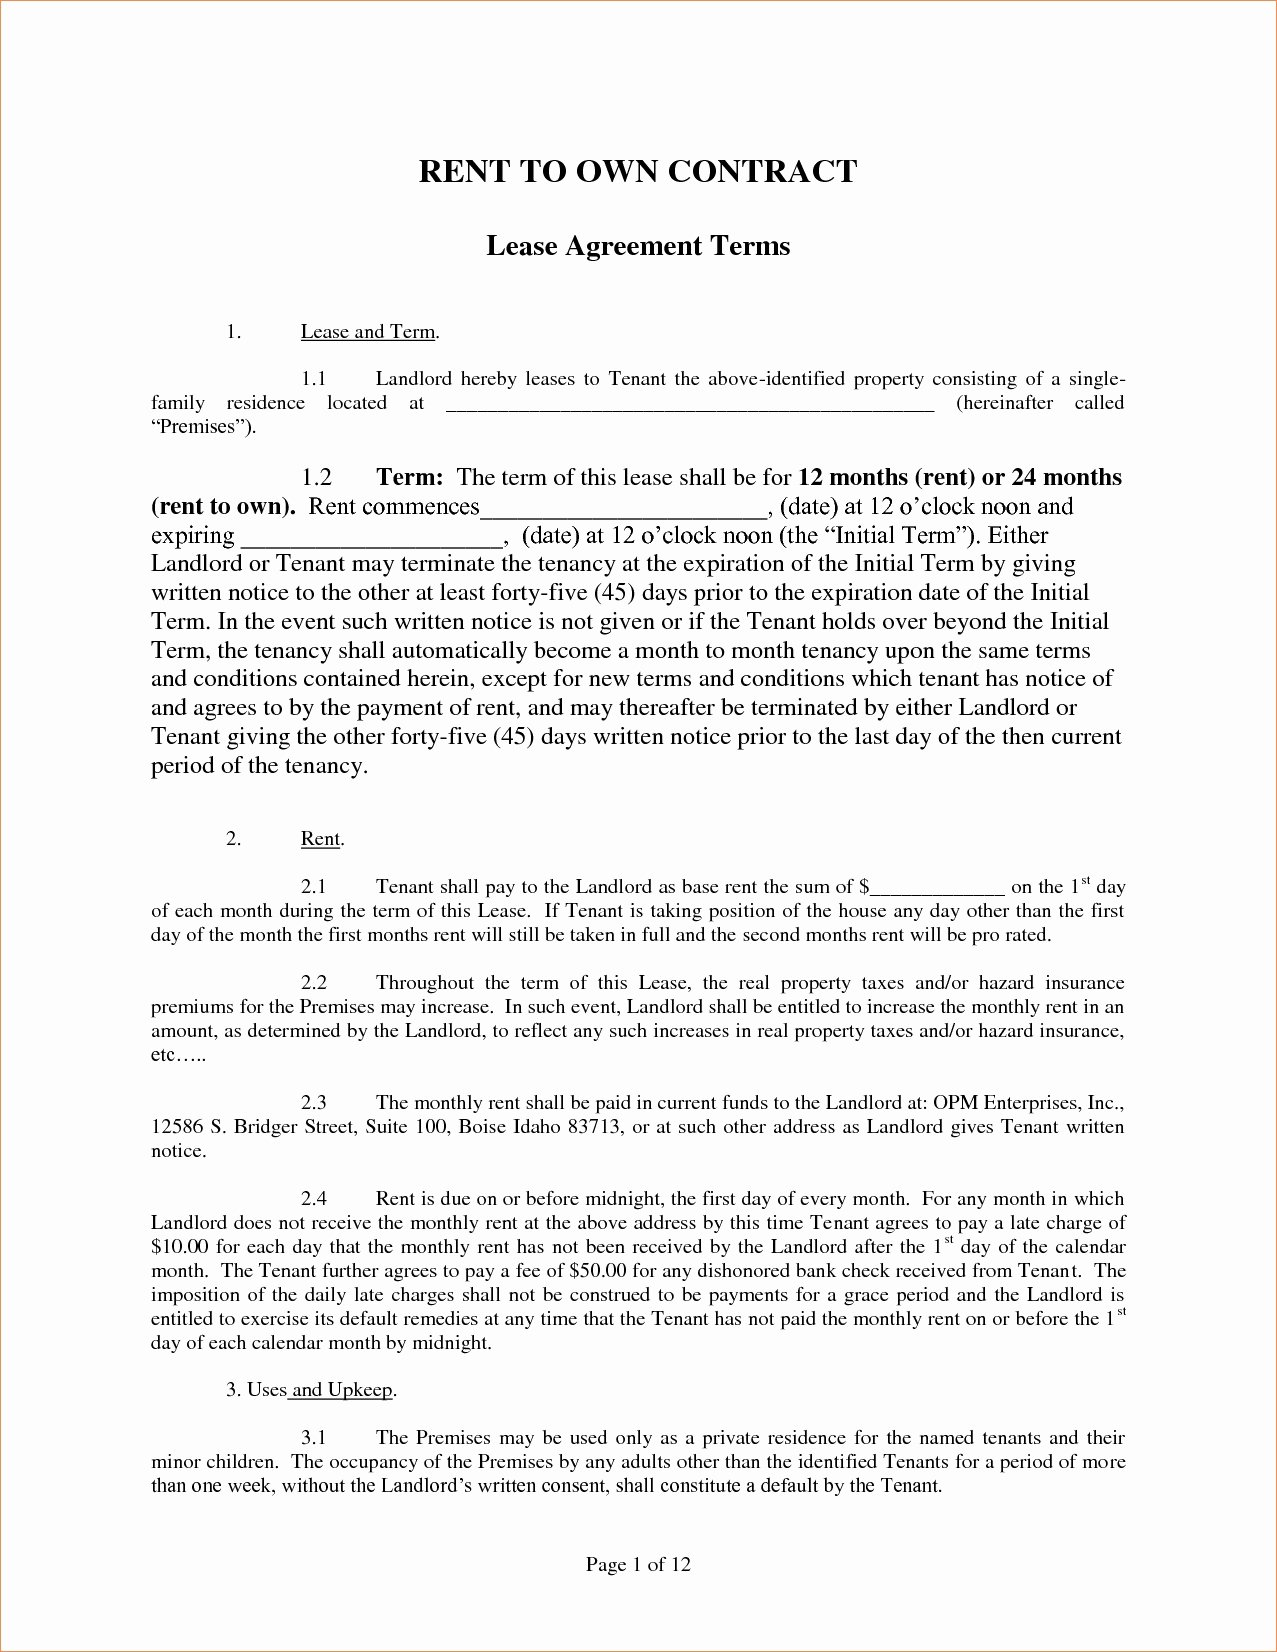 Rent to Own Contract Templates Unique 39 Excellent Rent to Own Property Agreement Template Mo